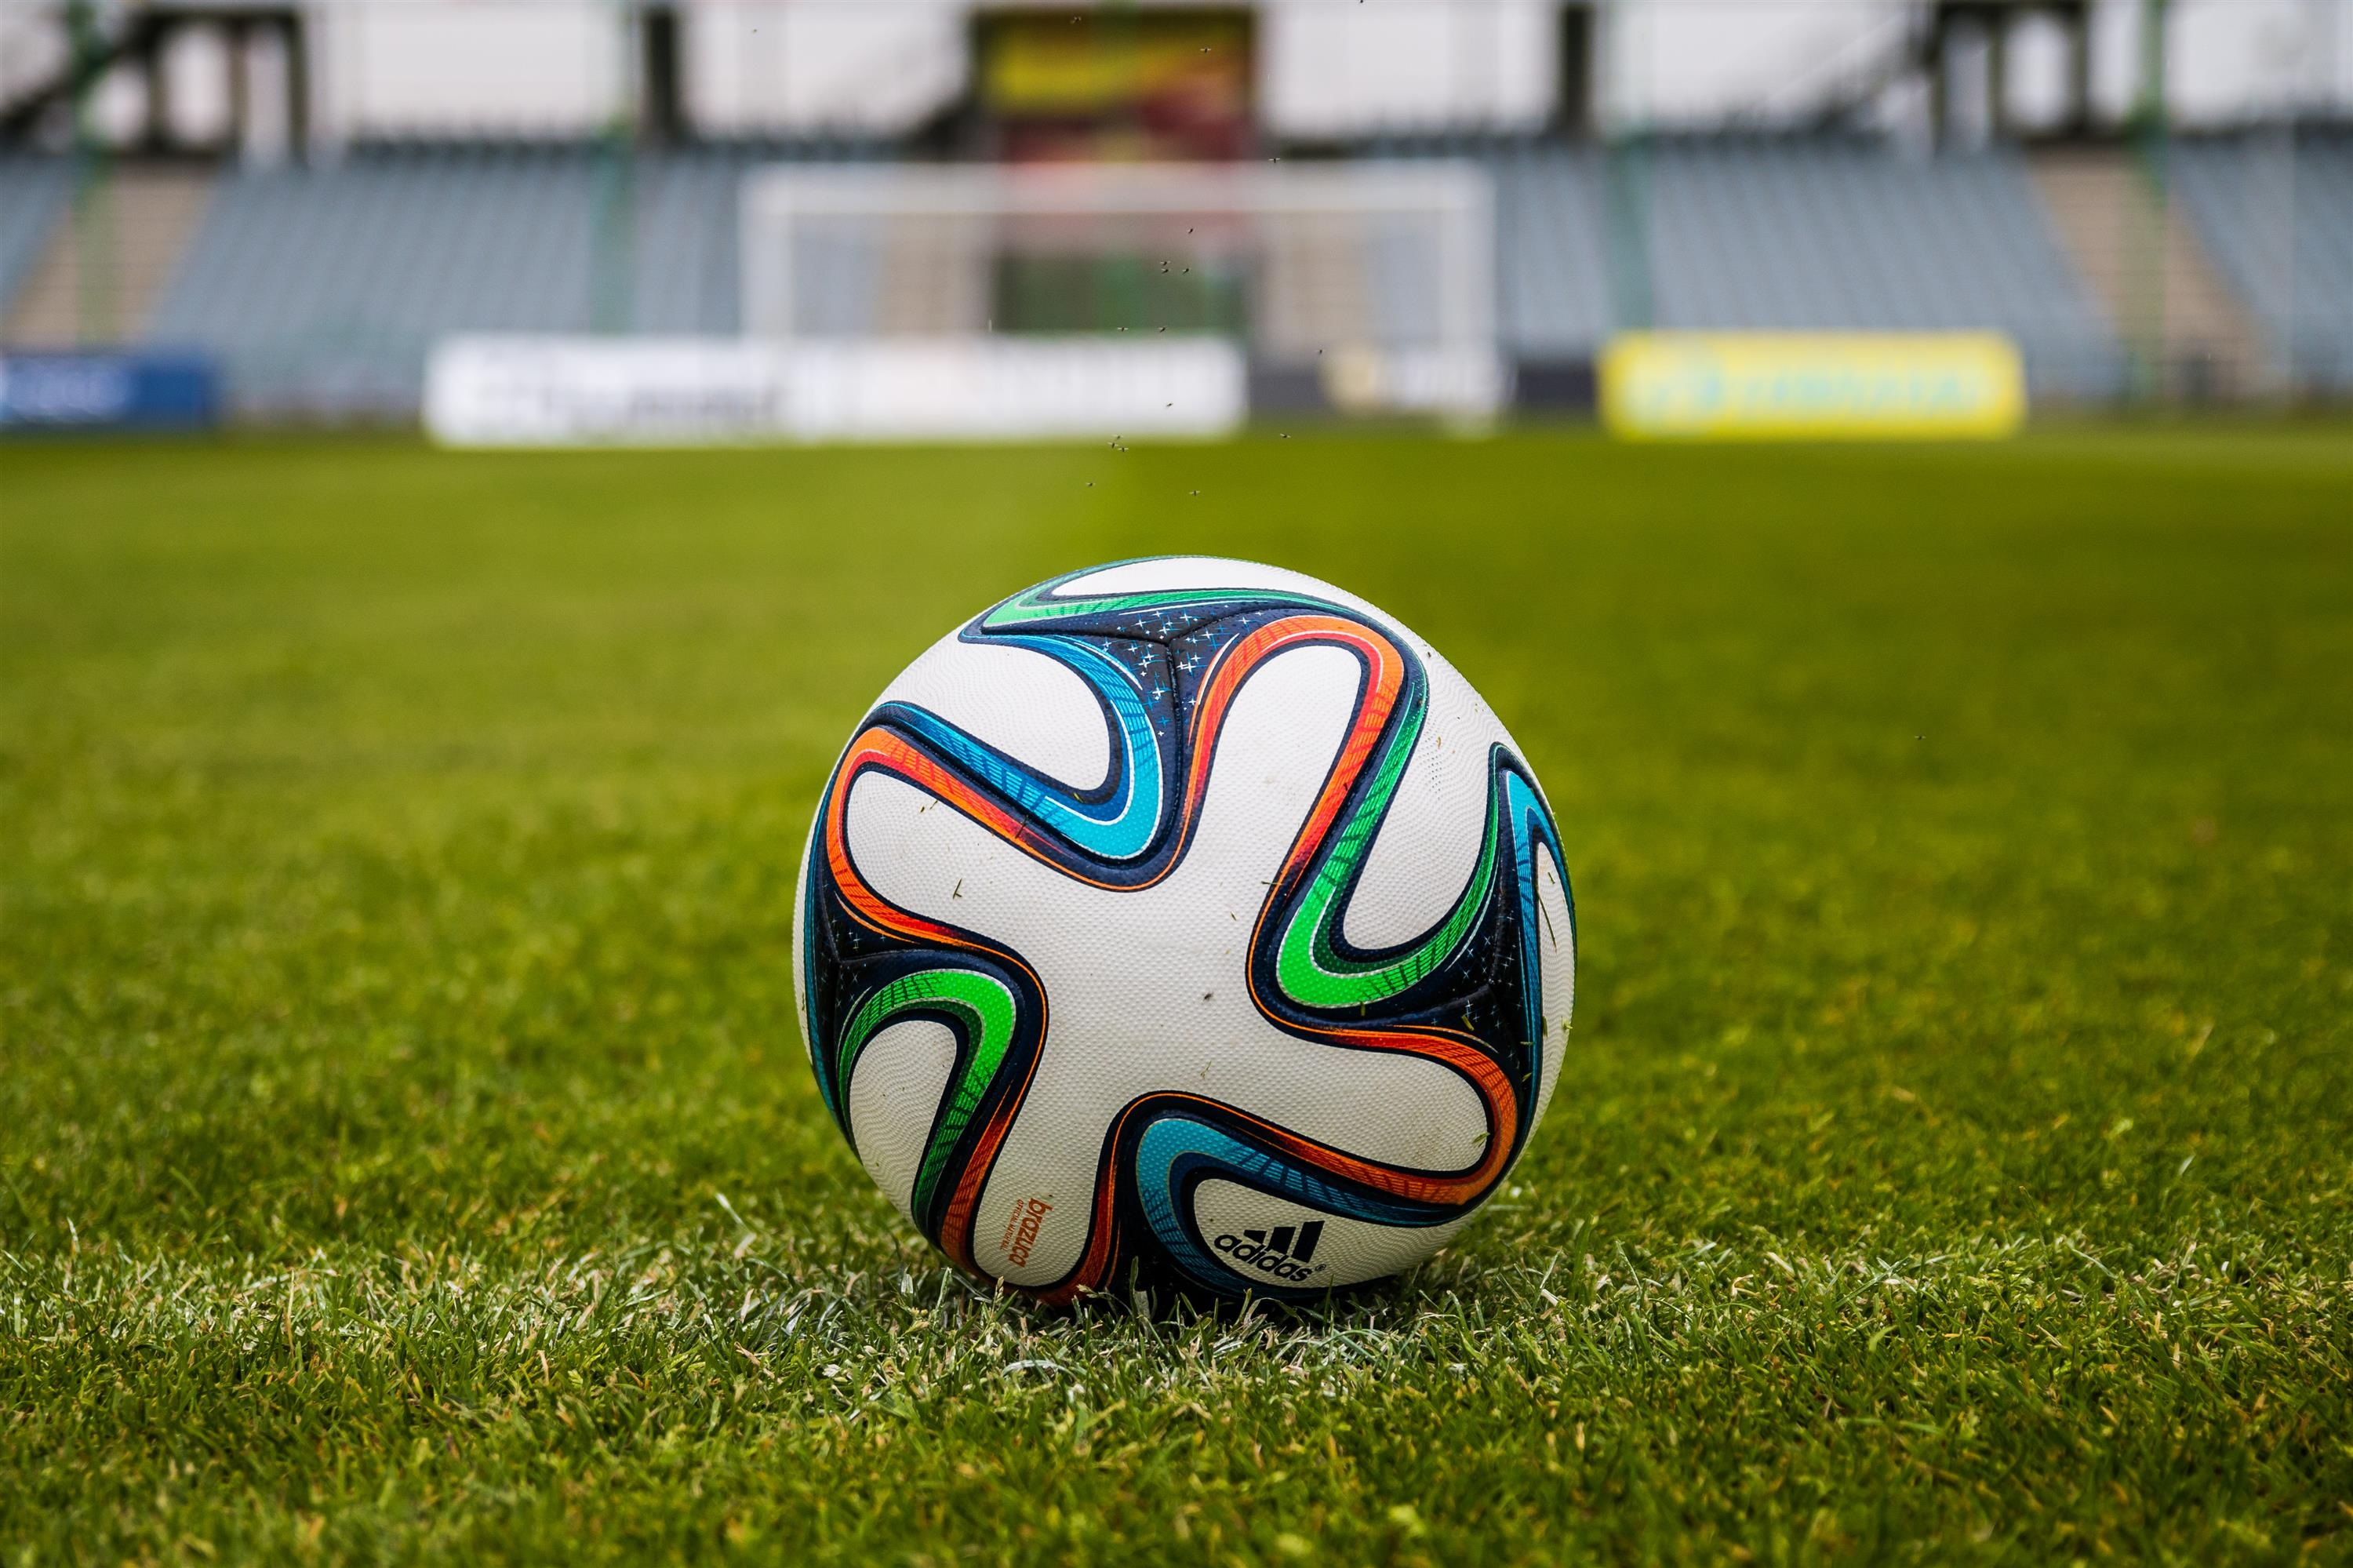 51254 download wallpaper Sports, Ball, Football, Field, Grass screensavers and pictures for free